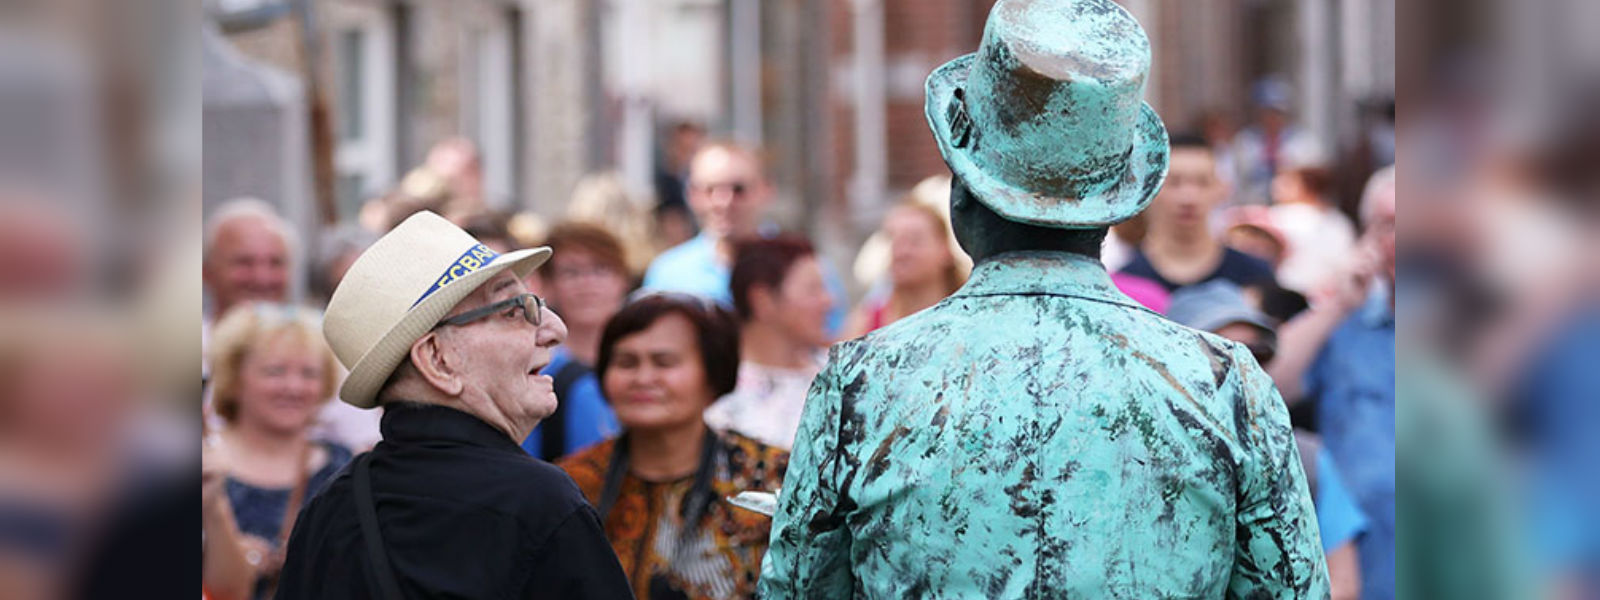 Statues come to life at street artists festival in Belgium